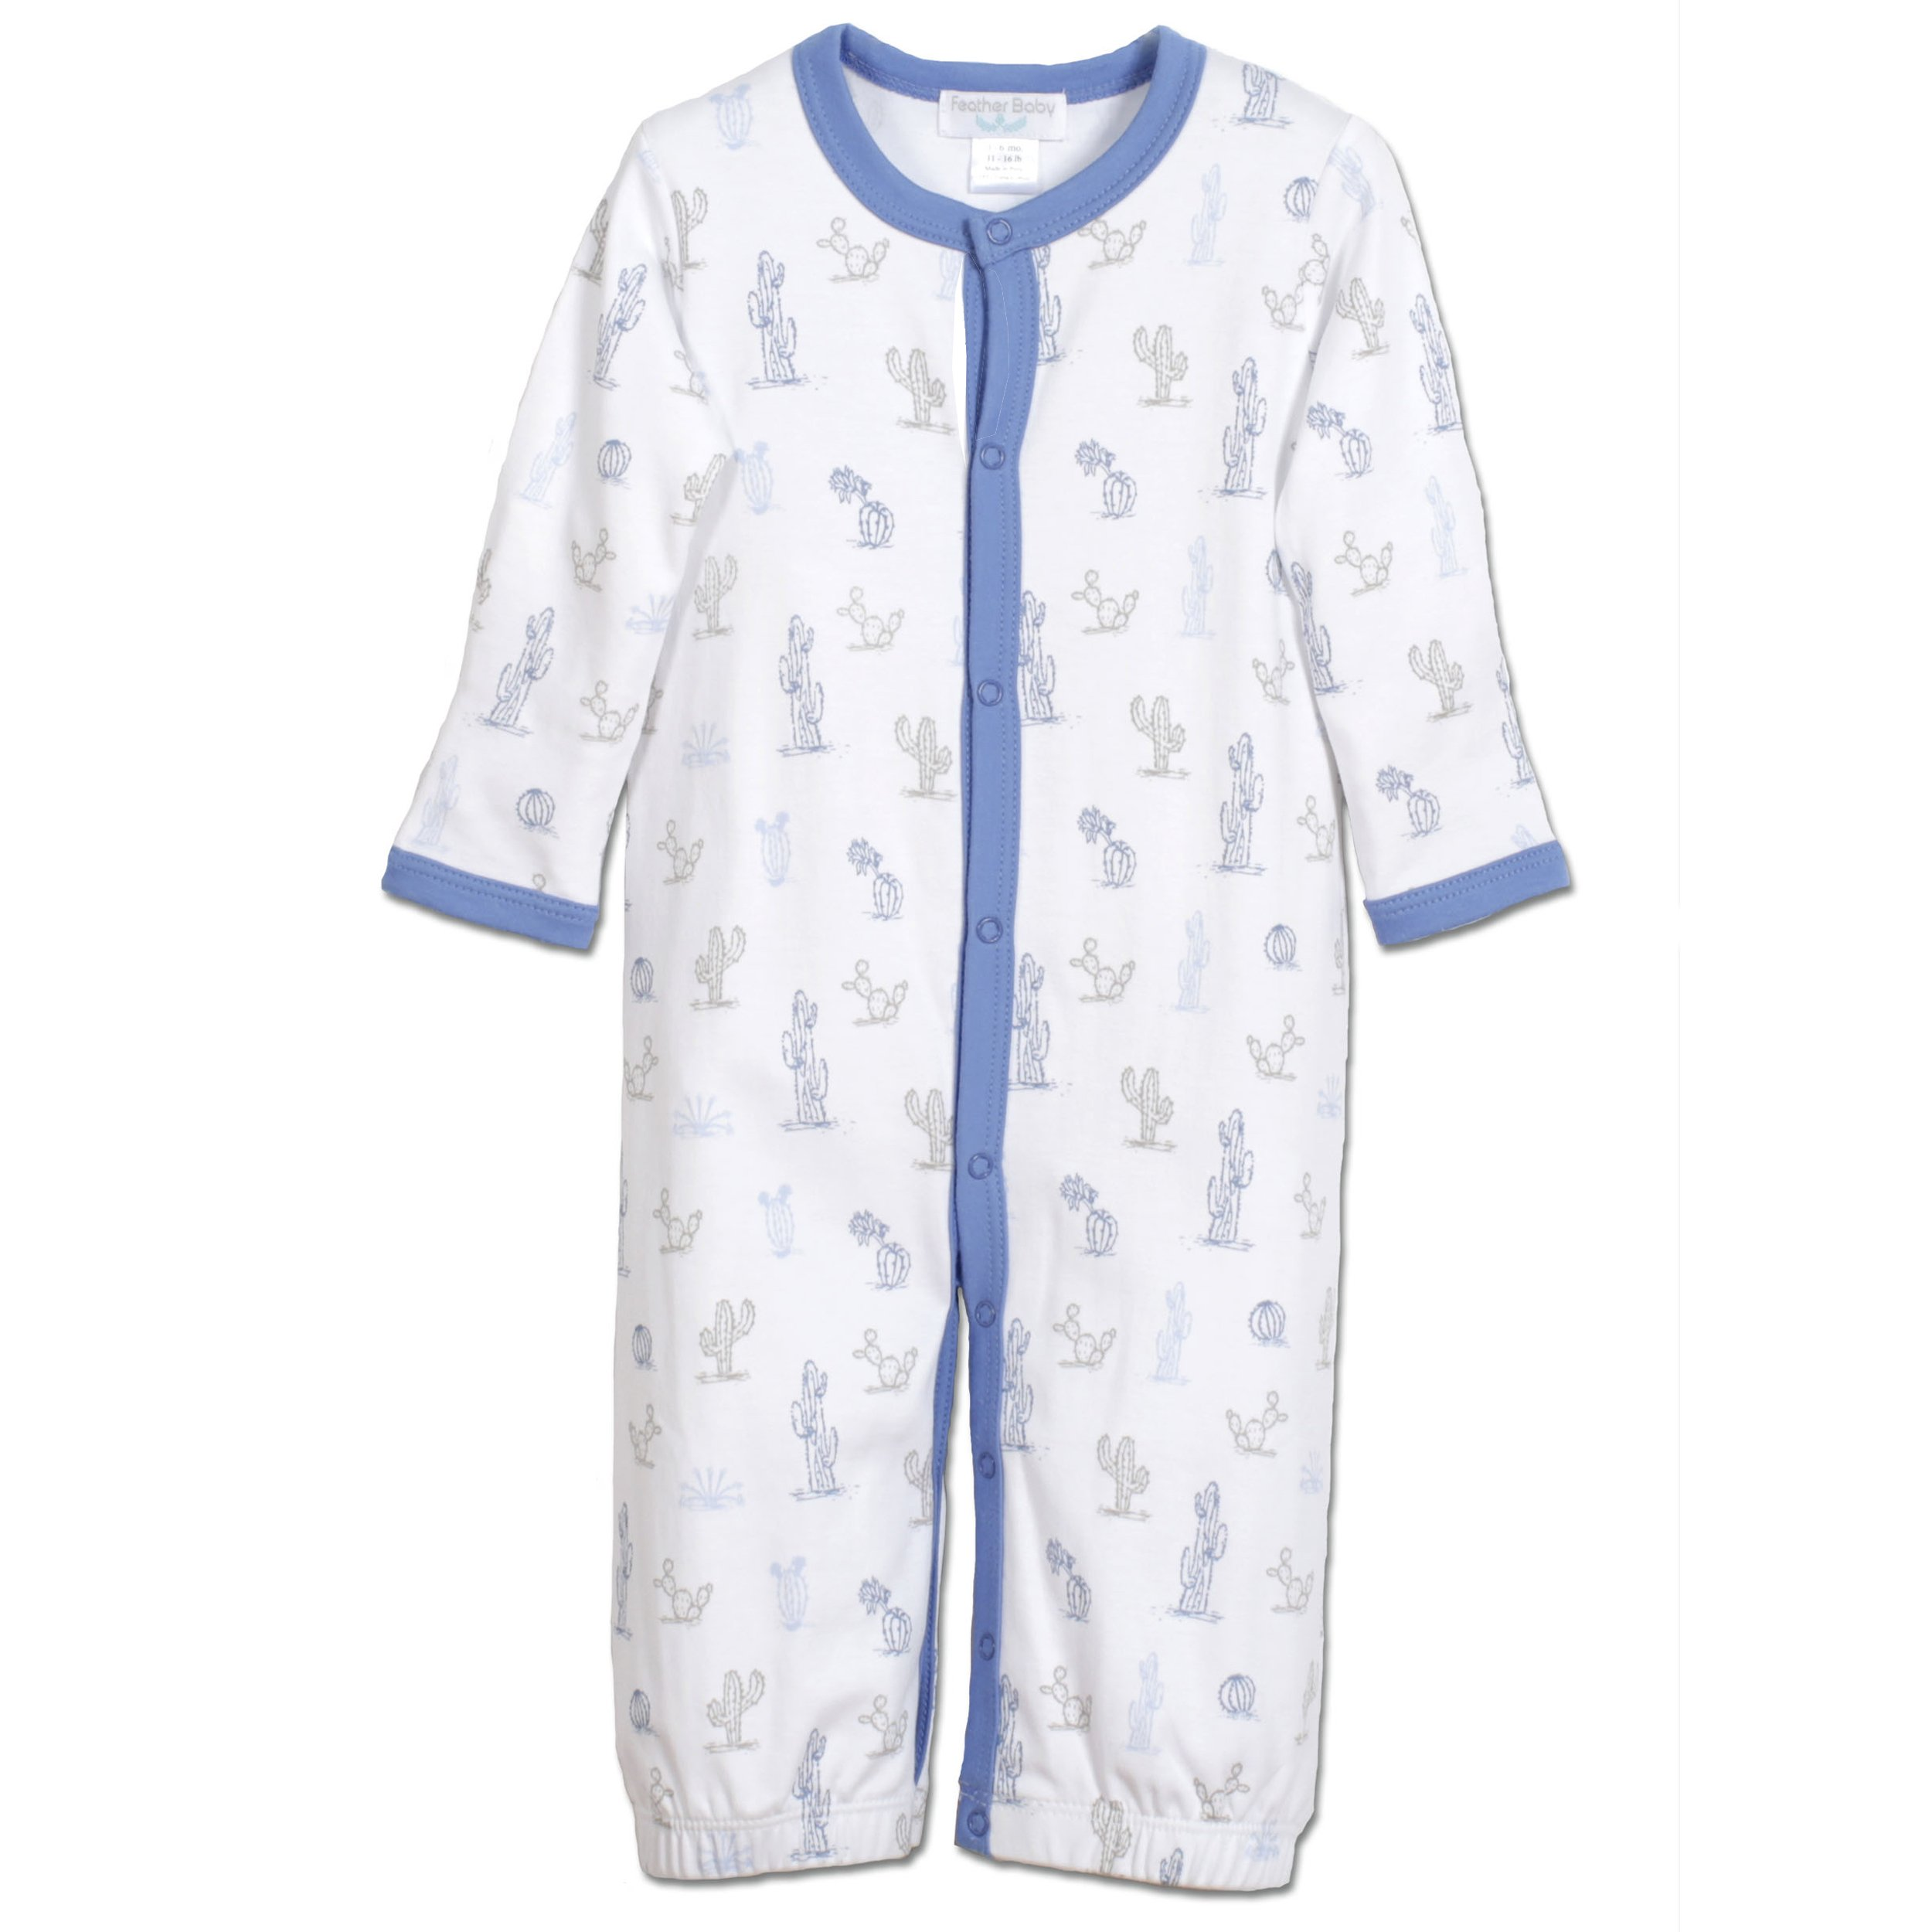 Feather Baby Little Boys Pima Cotton Long Sleeve Henley Converter Gown